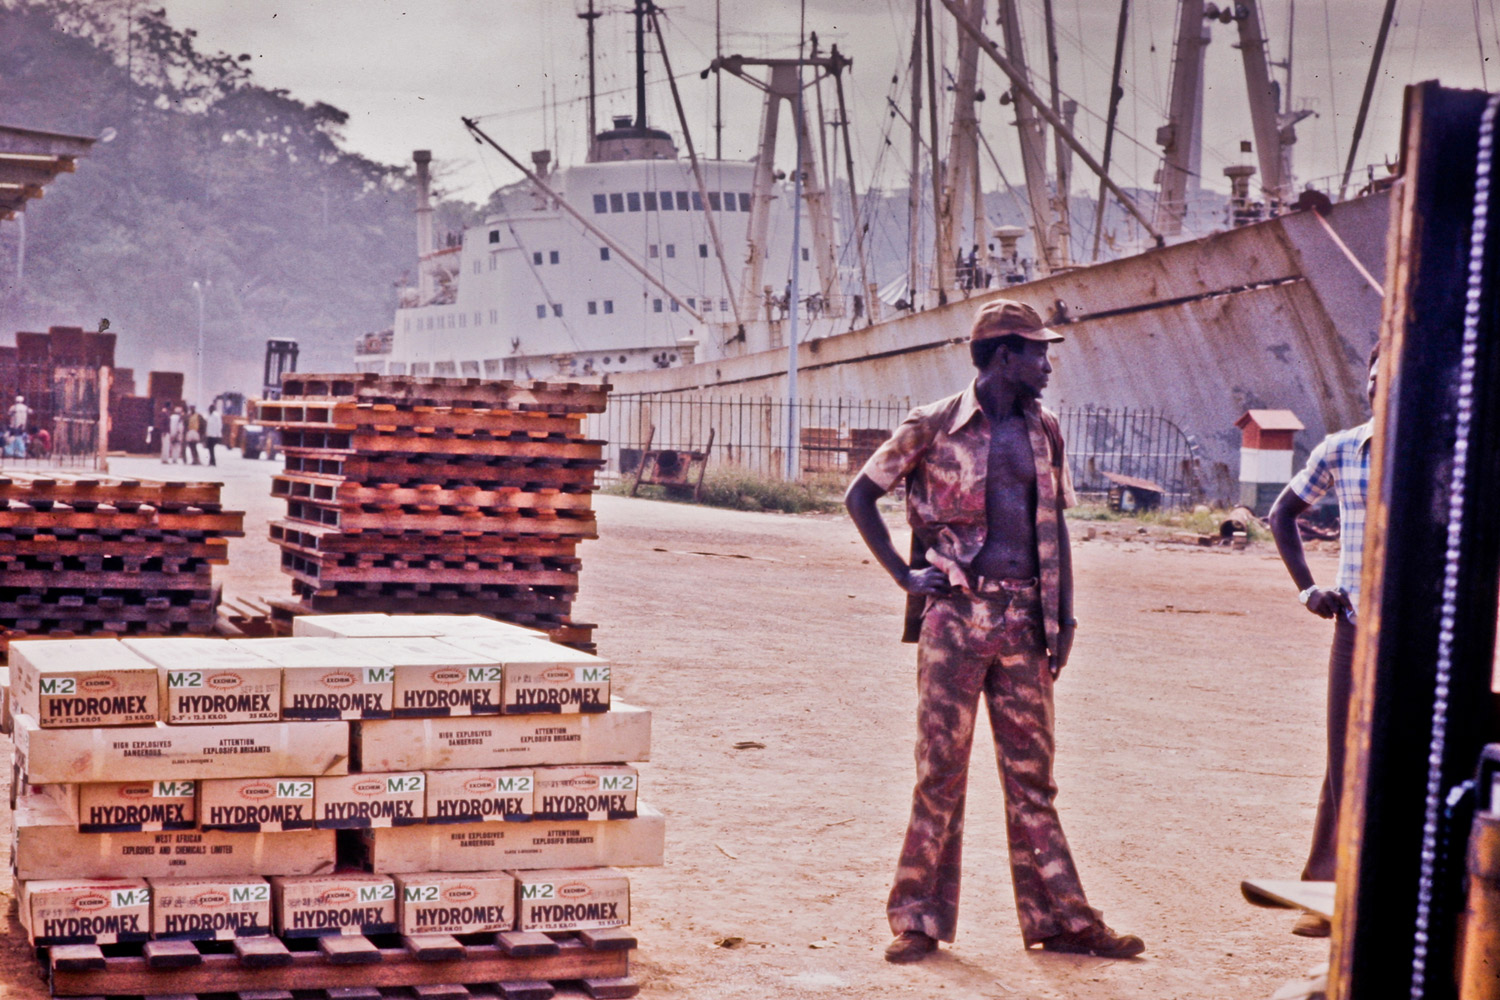 Hydromex. Denko Shipping Lines, off-loading 100 tons of Hydromex destined for the Exchem plant. Port of Monrovia, 1977.